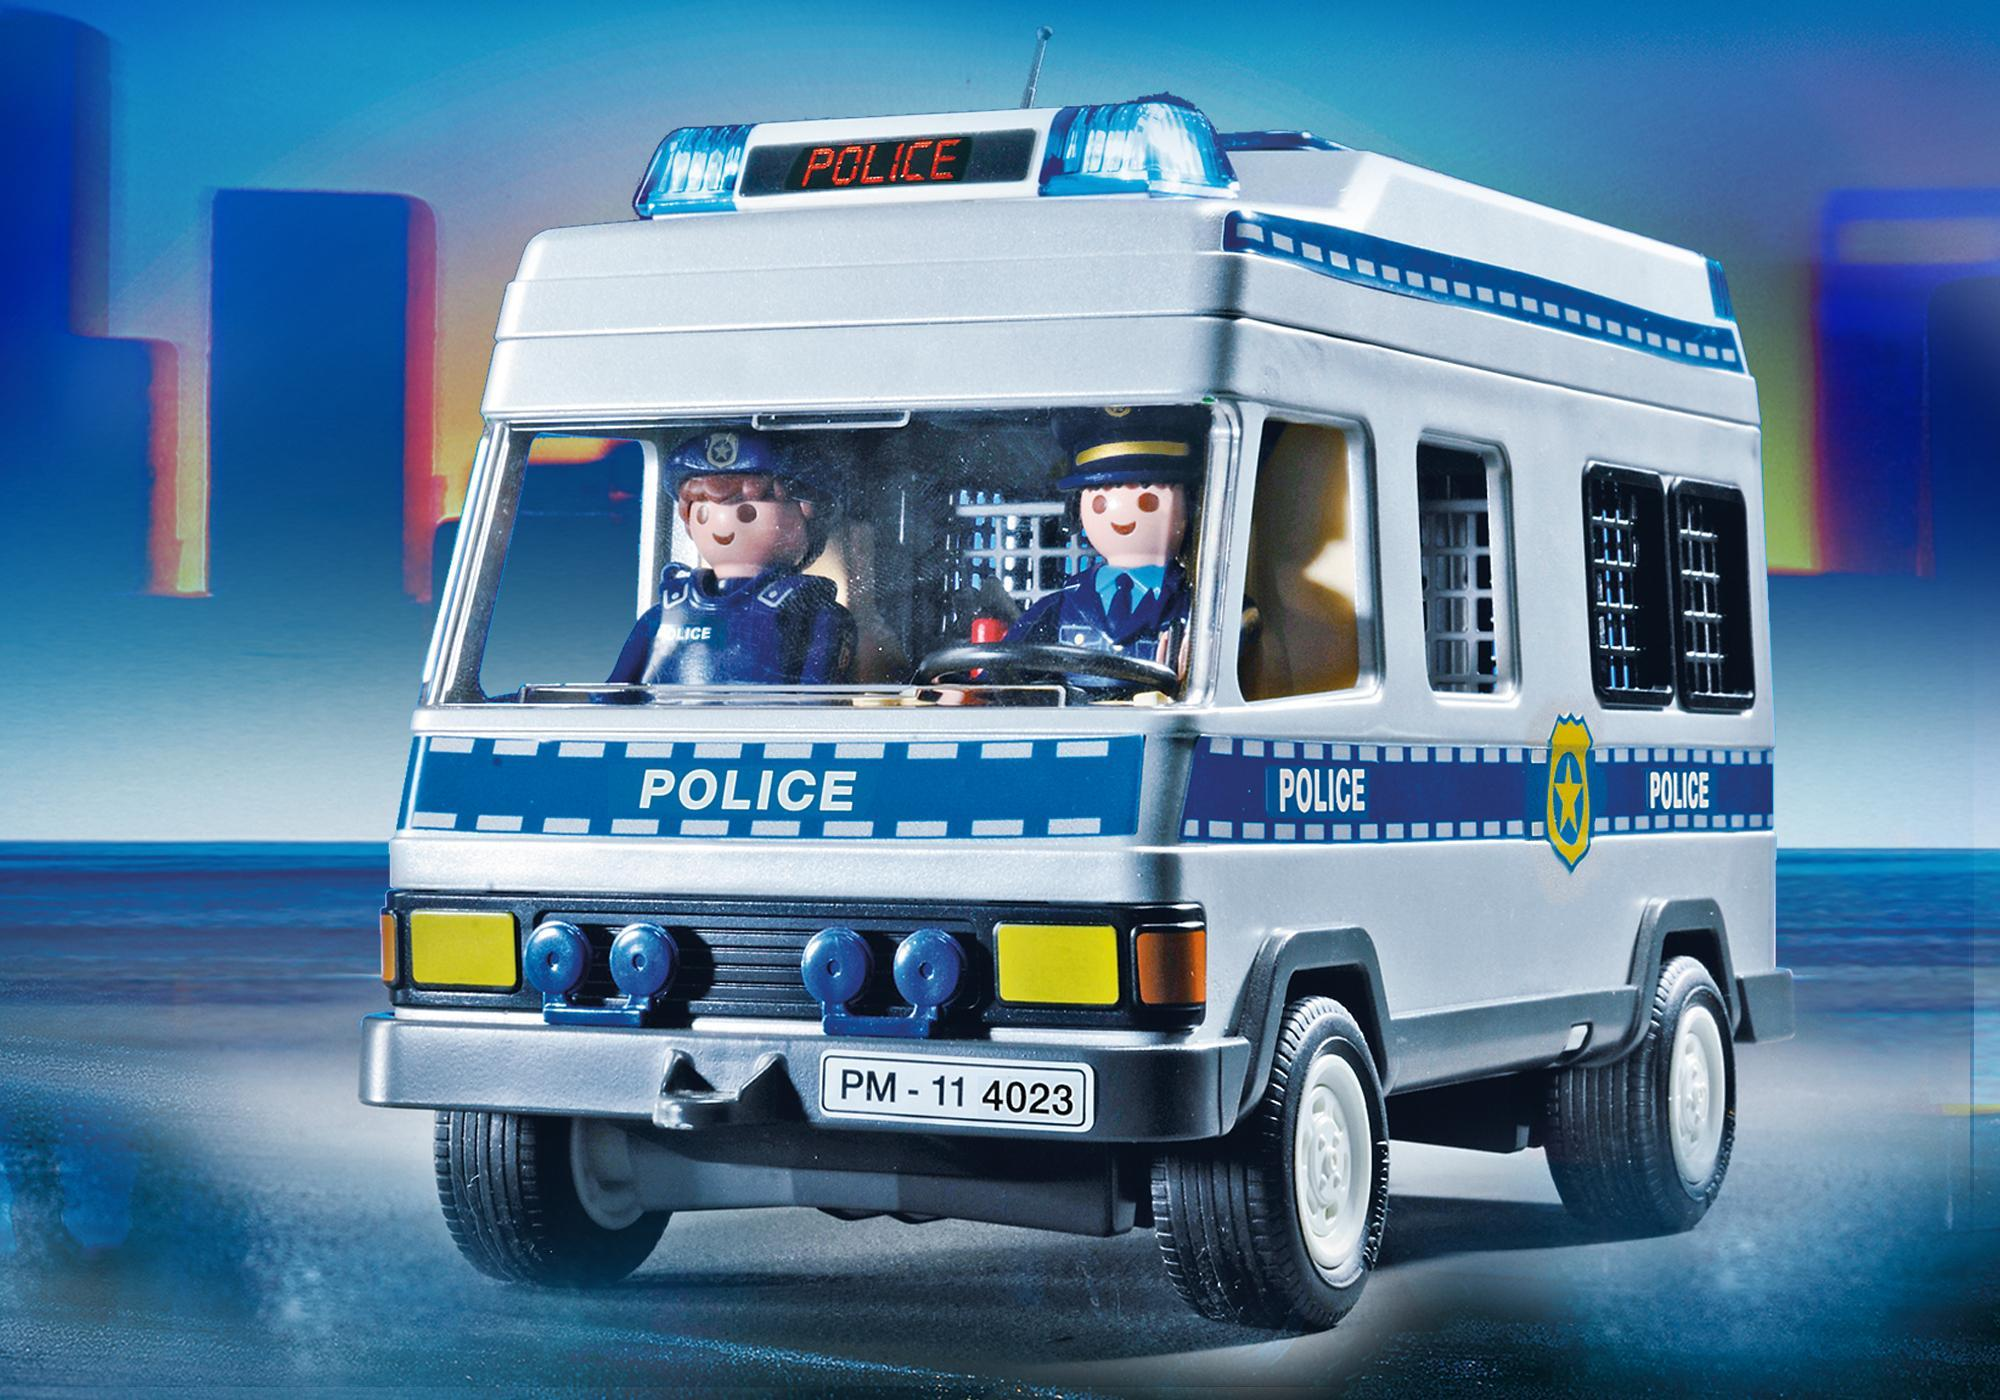 http://media.playmobil.com/i/playmobil/4023_product_extra2